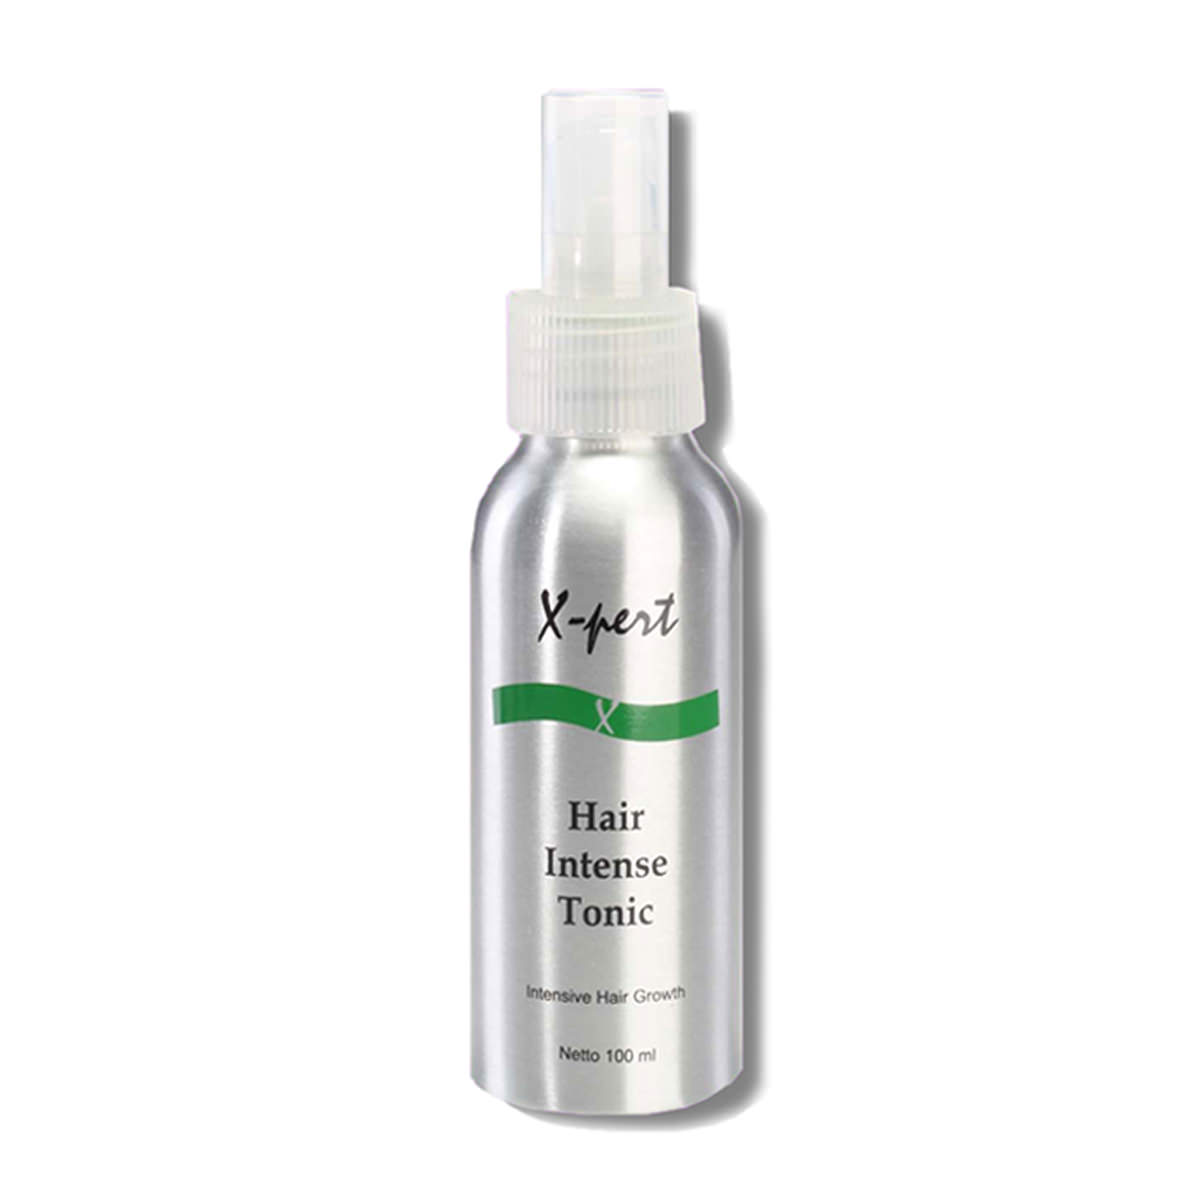 X-pert-Hair-Intense-Tonic-Intensive-Hair-Growth-(100-ml)-sfw(1)